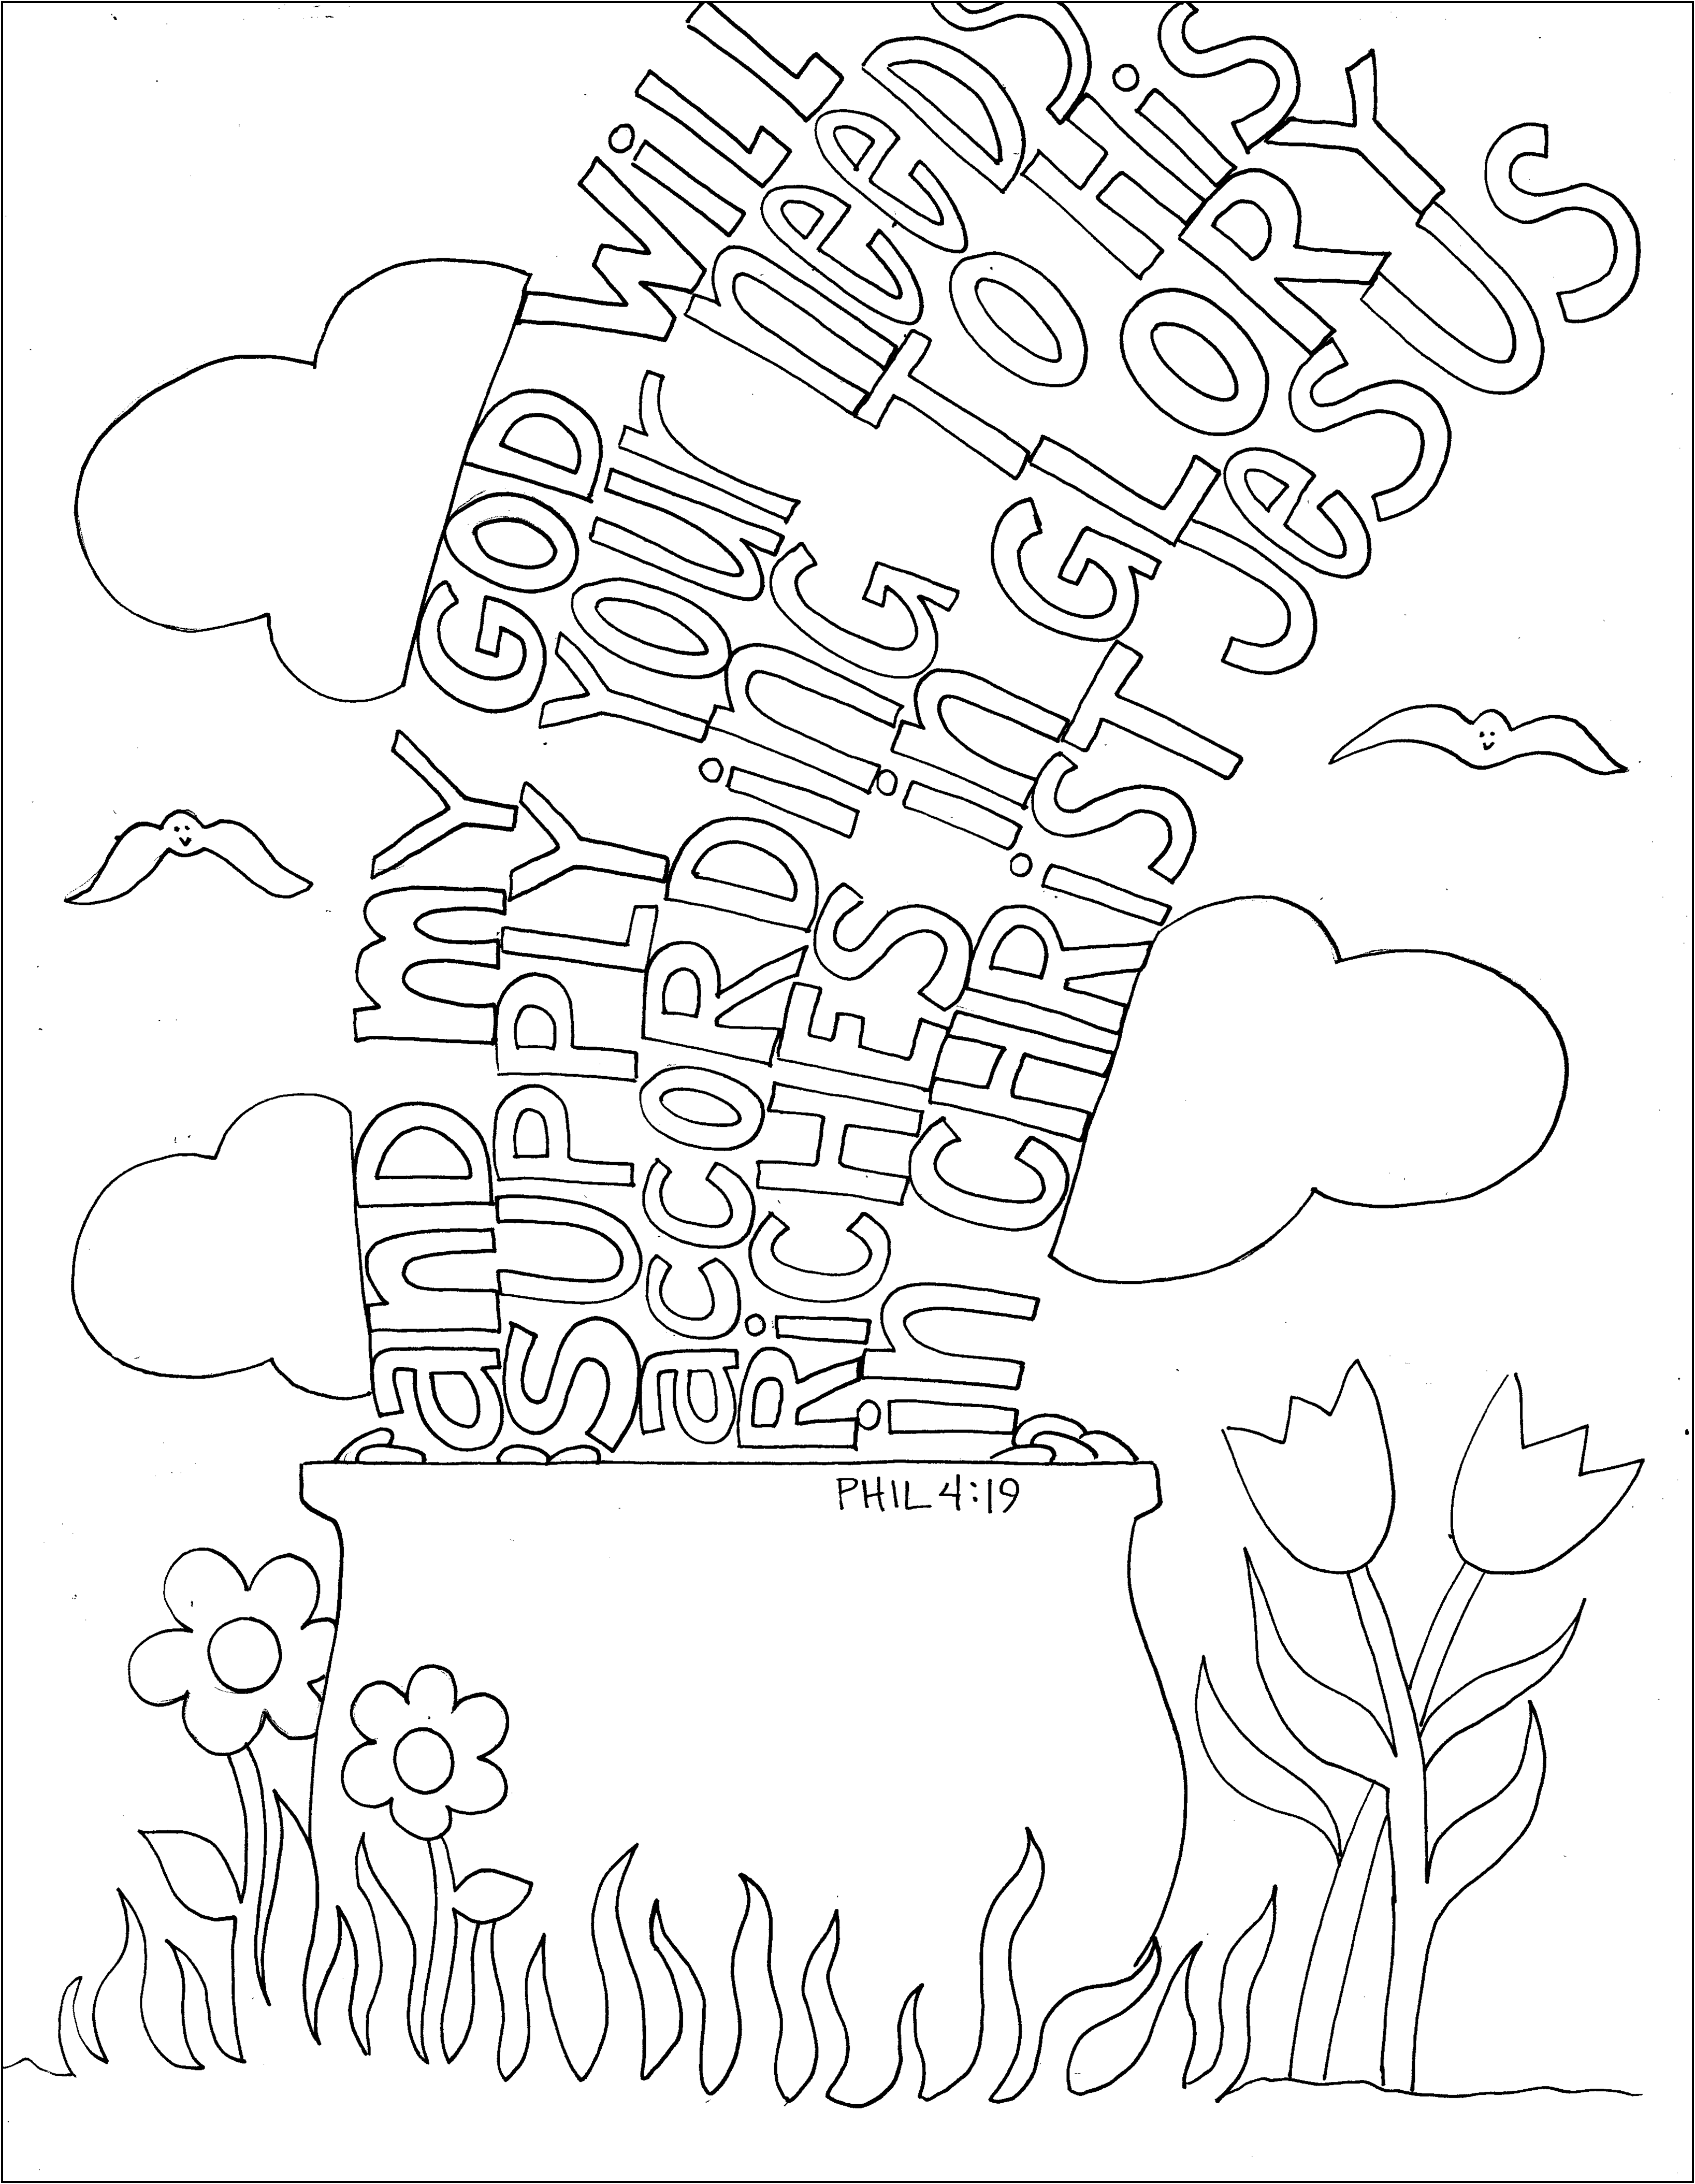 Phil 4 19 Coloring Page